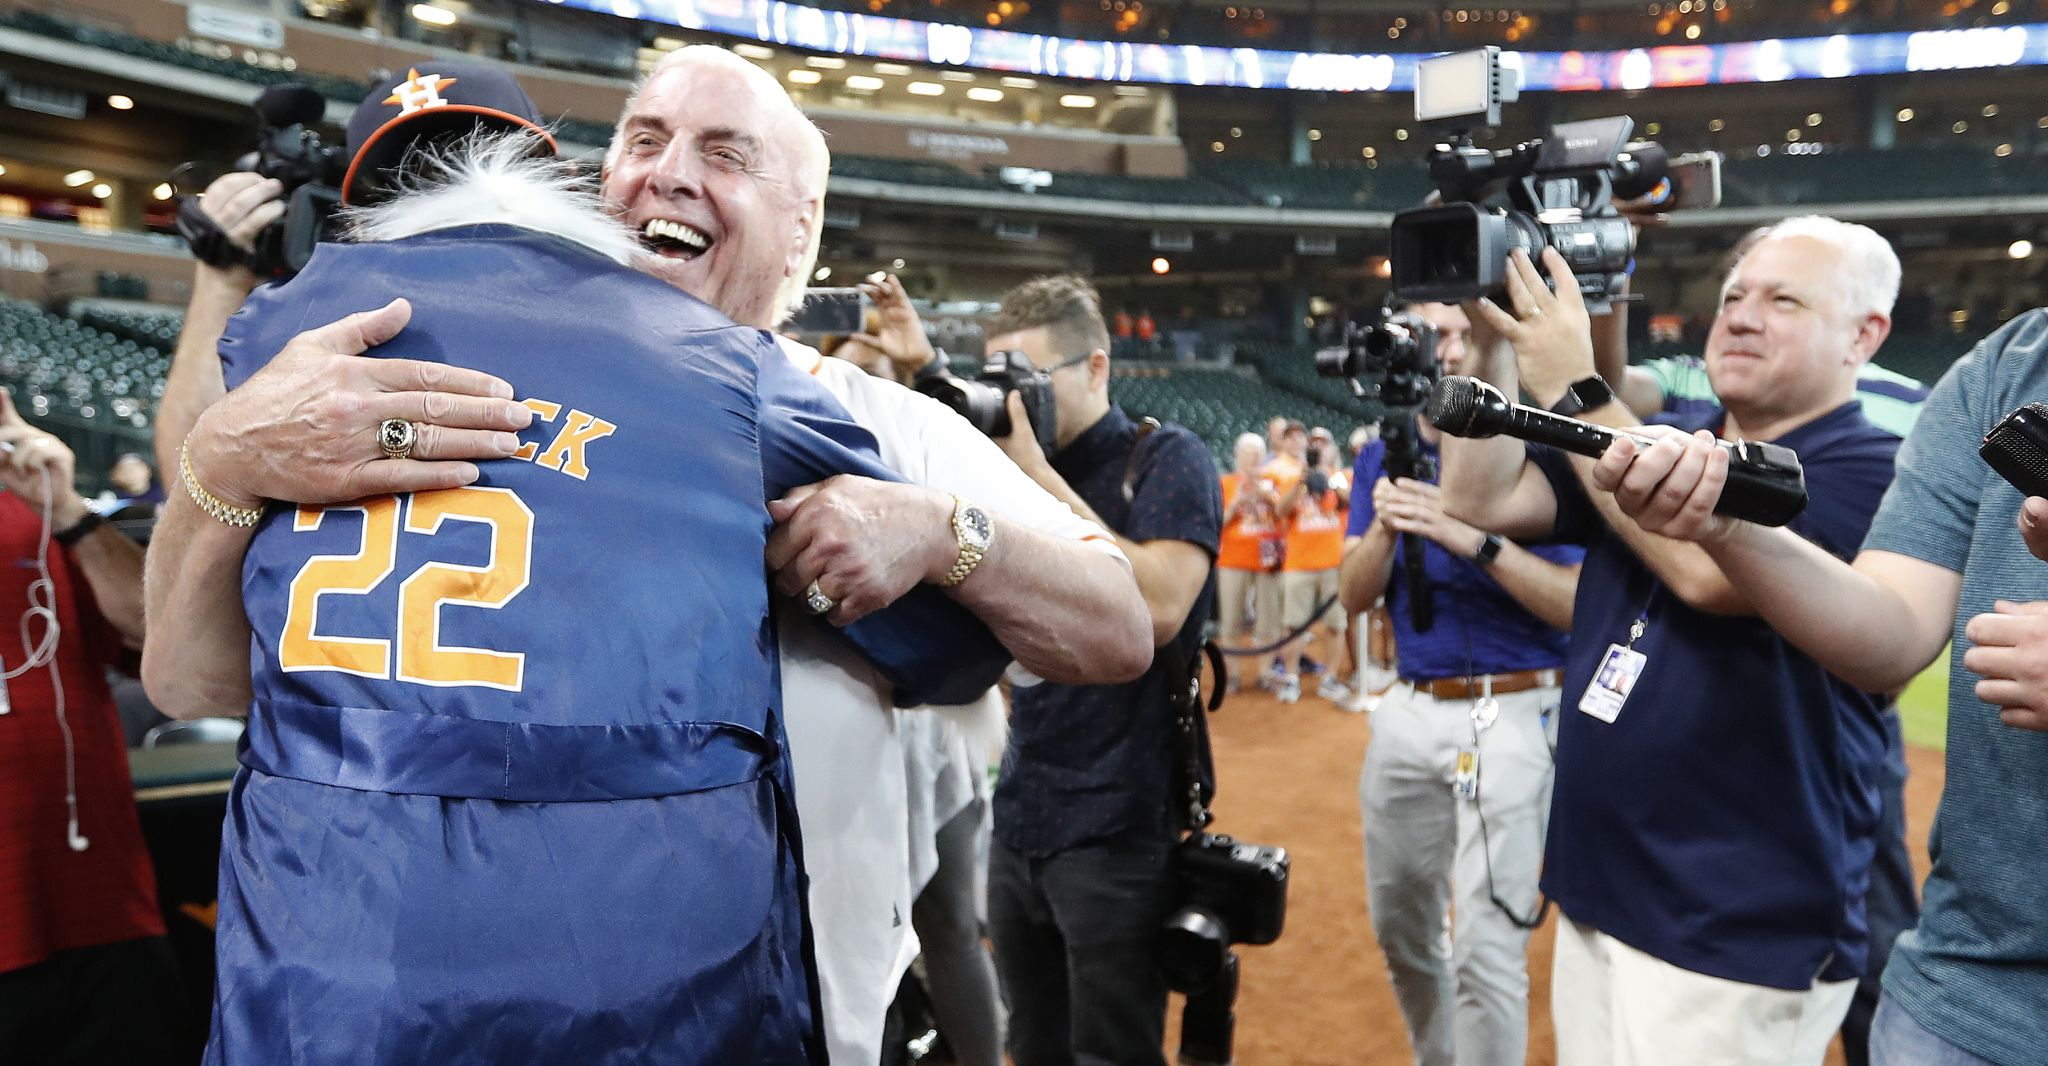 Astros' Josh Reddick greets Ric Flair with wrestling attire